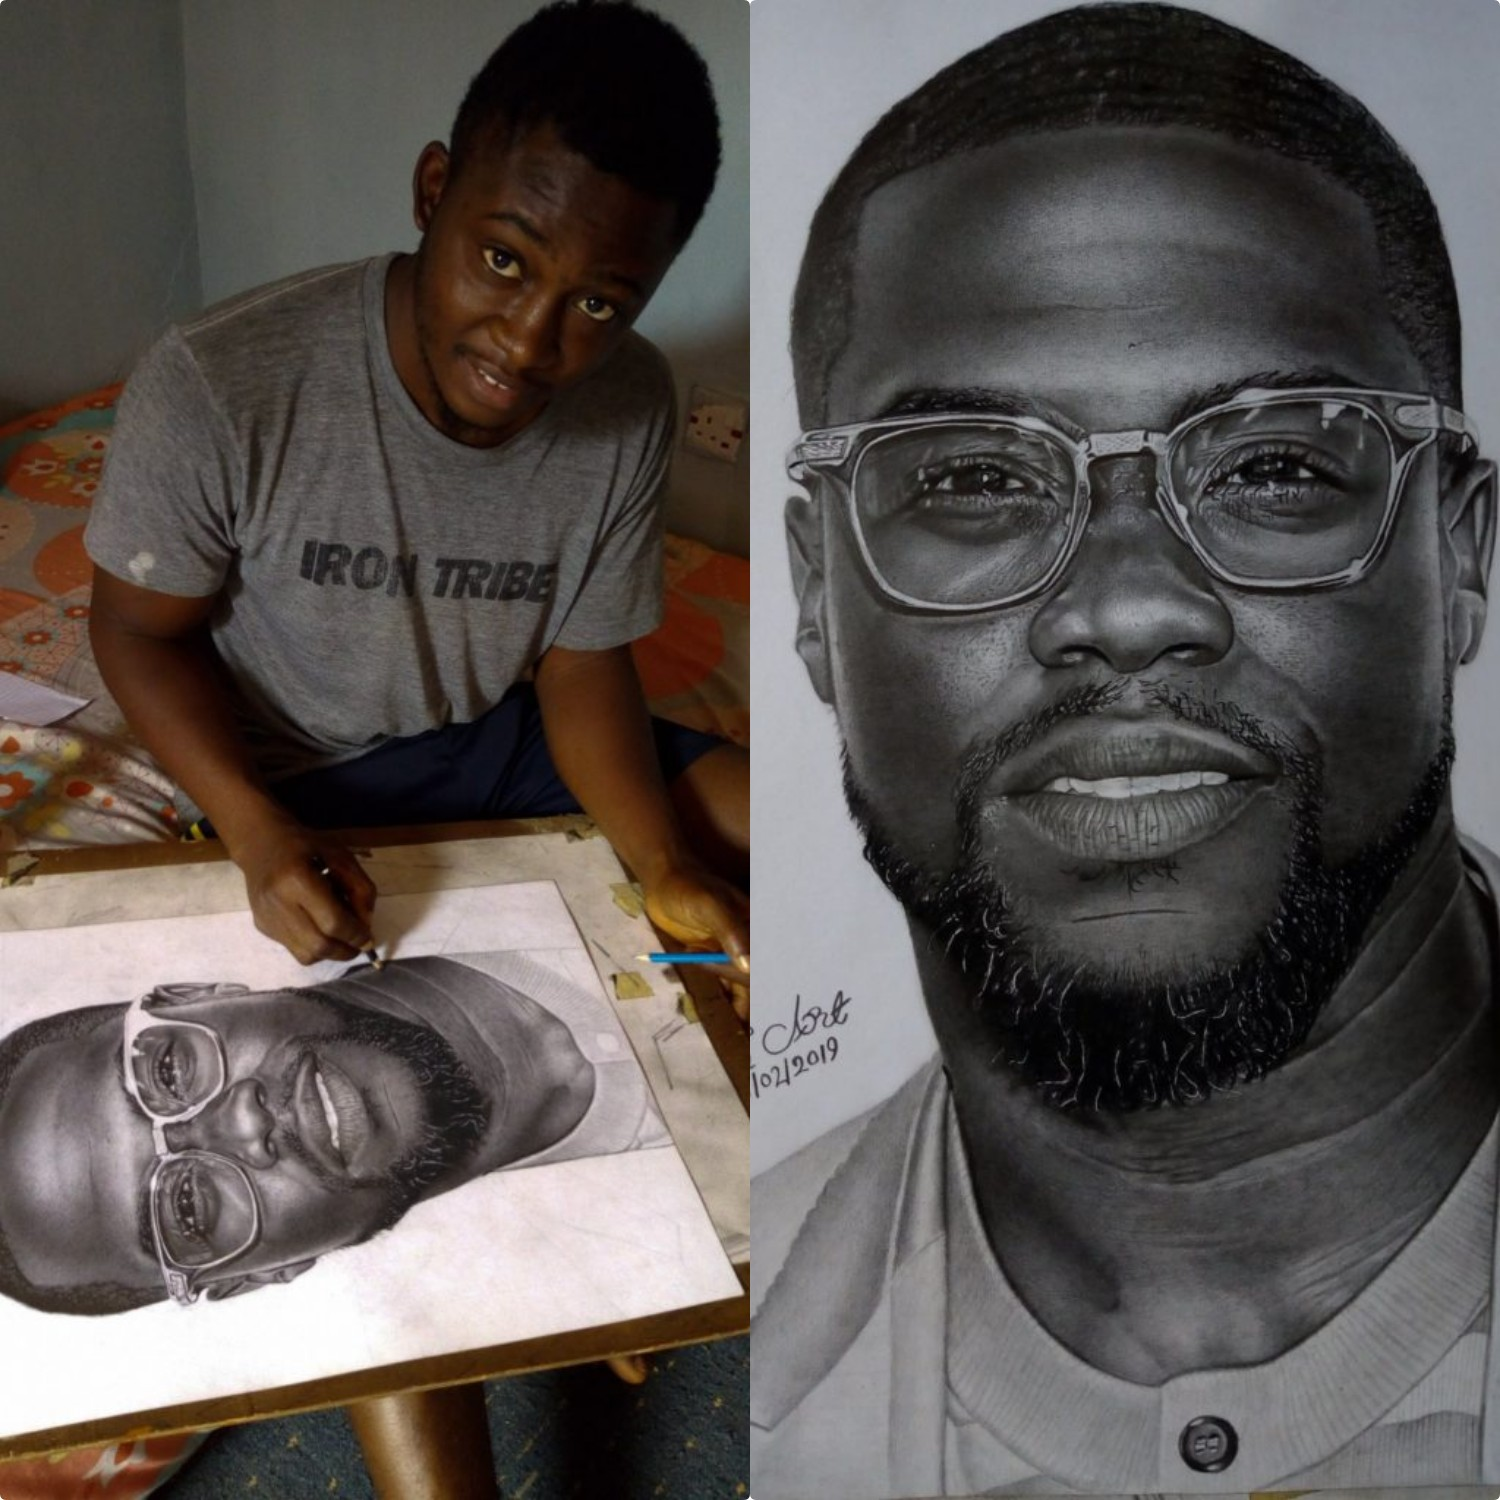 American comedian kevin hart supports nigerian hyperrealism pencil artiste who reached out to him